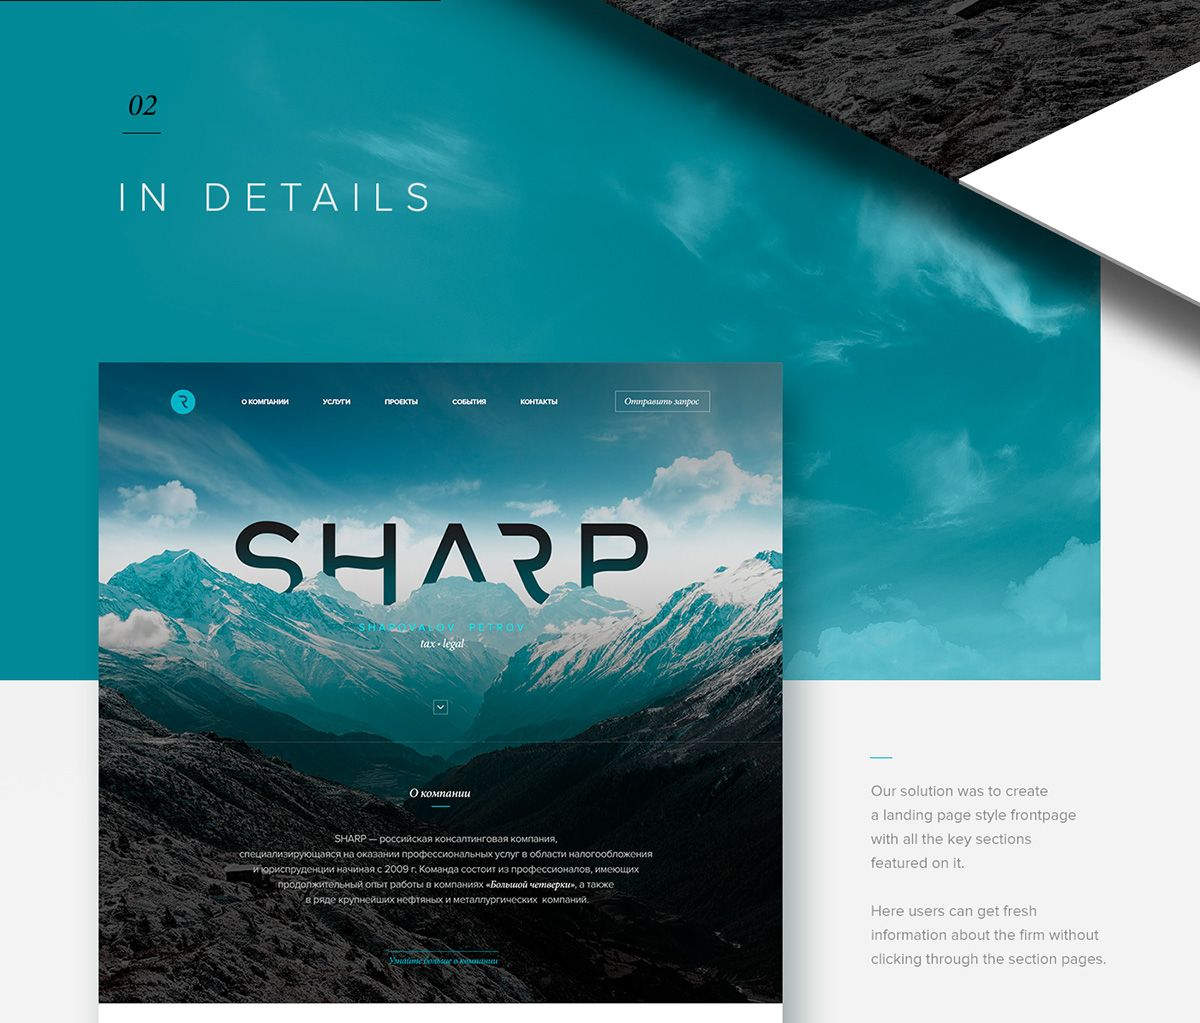 SHARP on Web Design Served